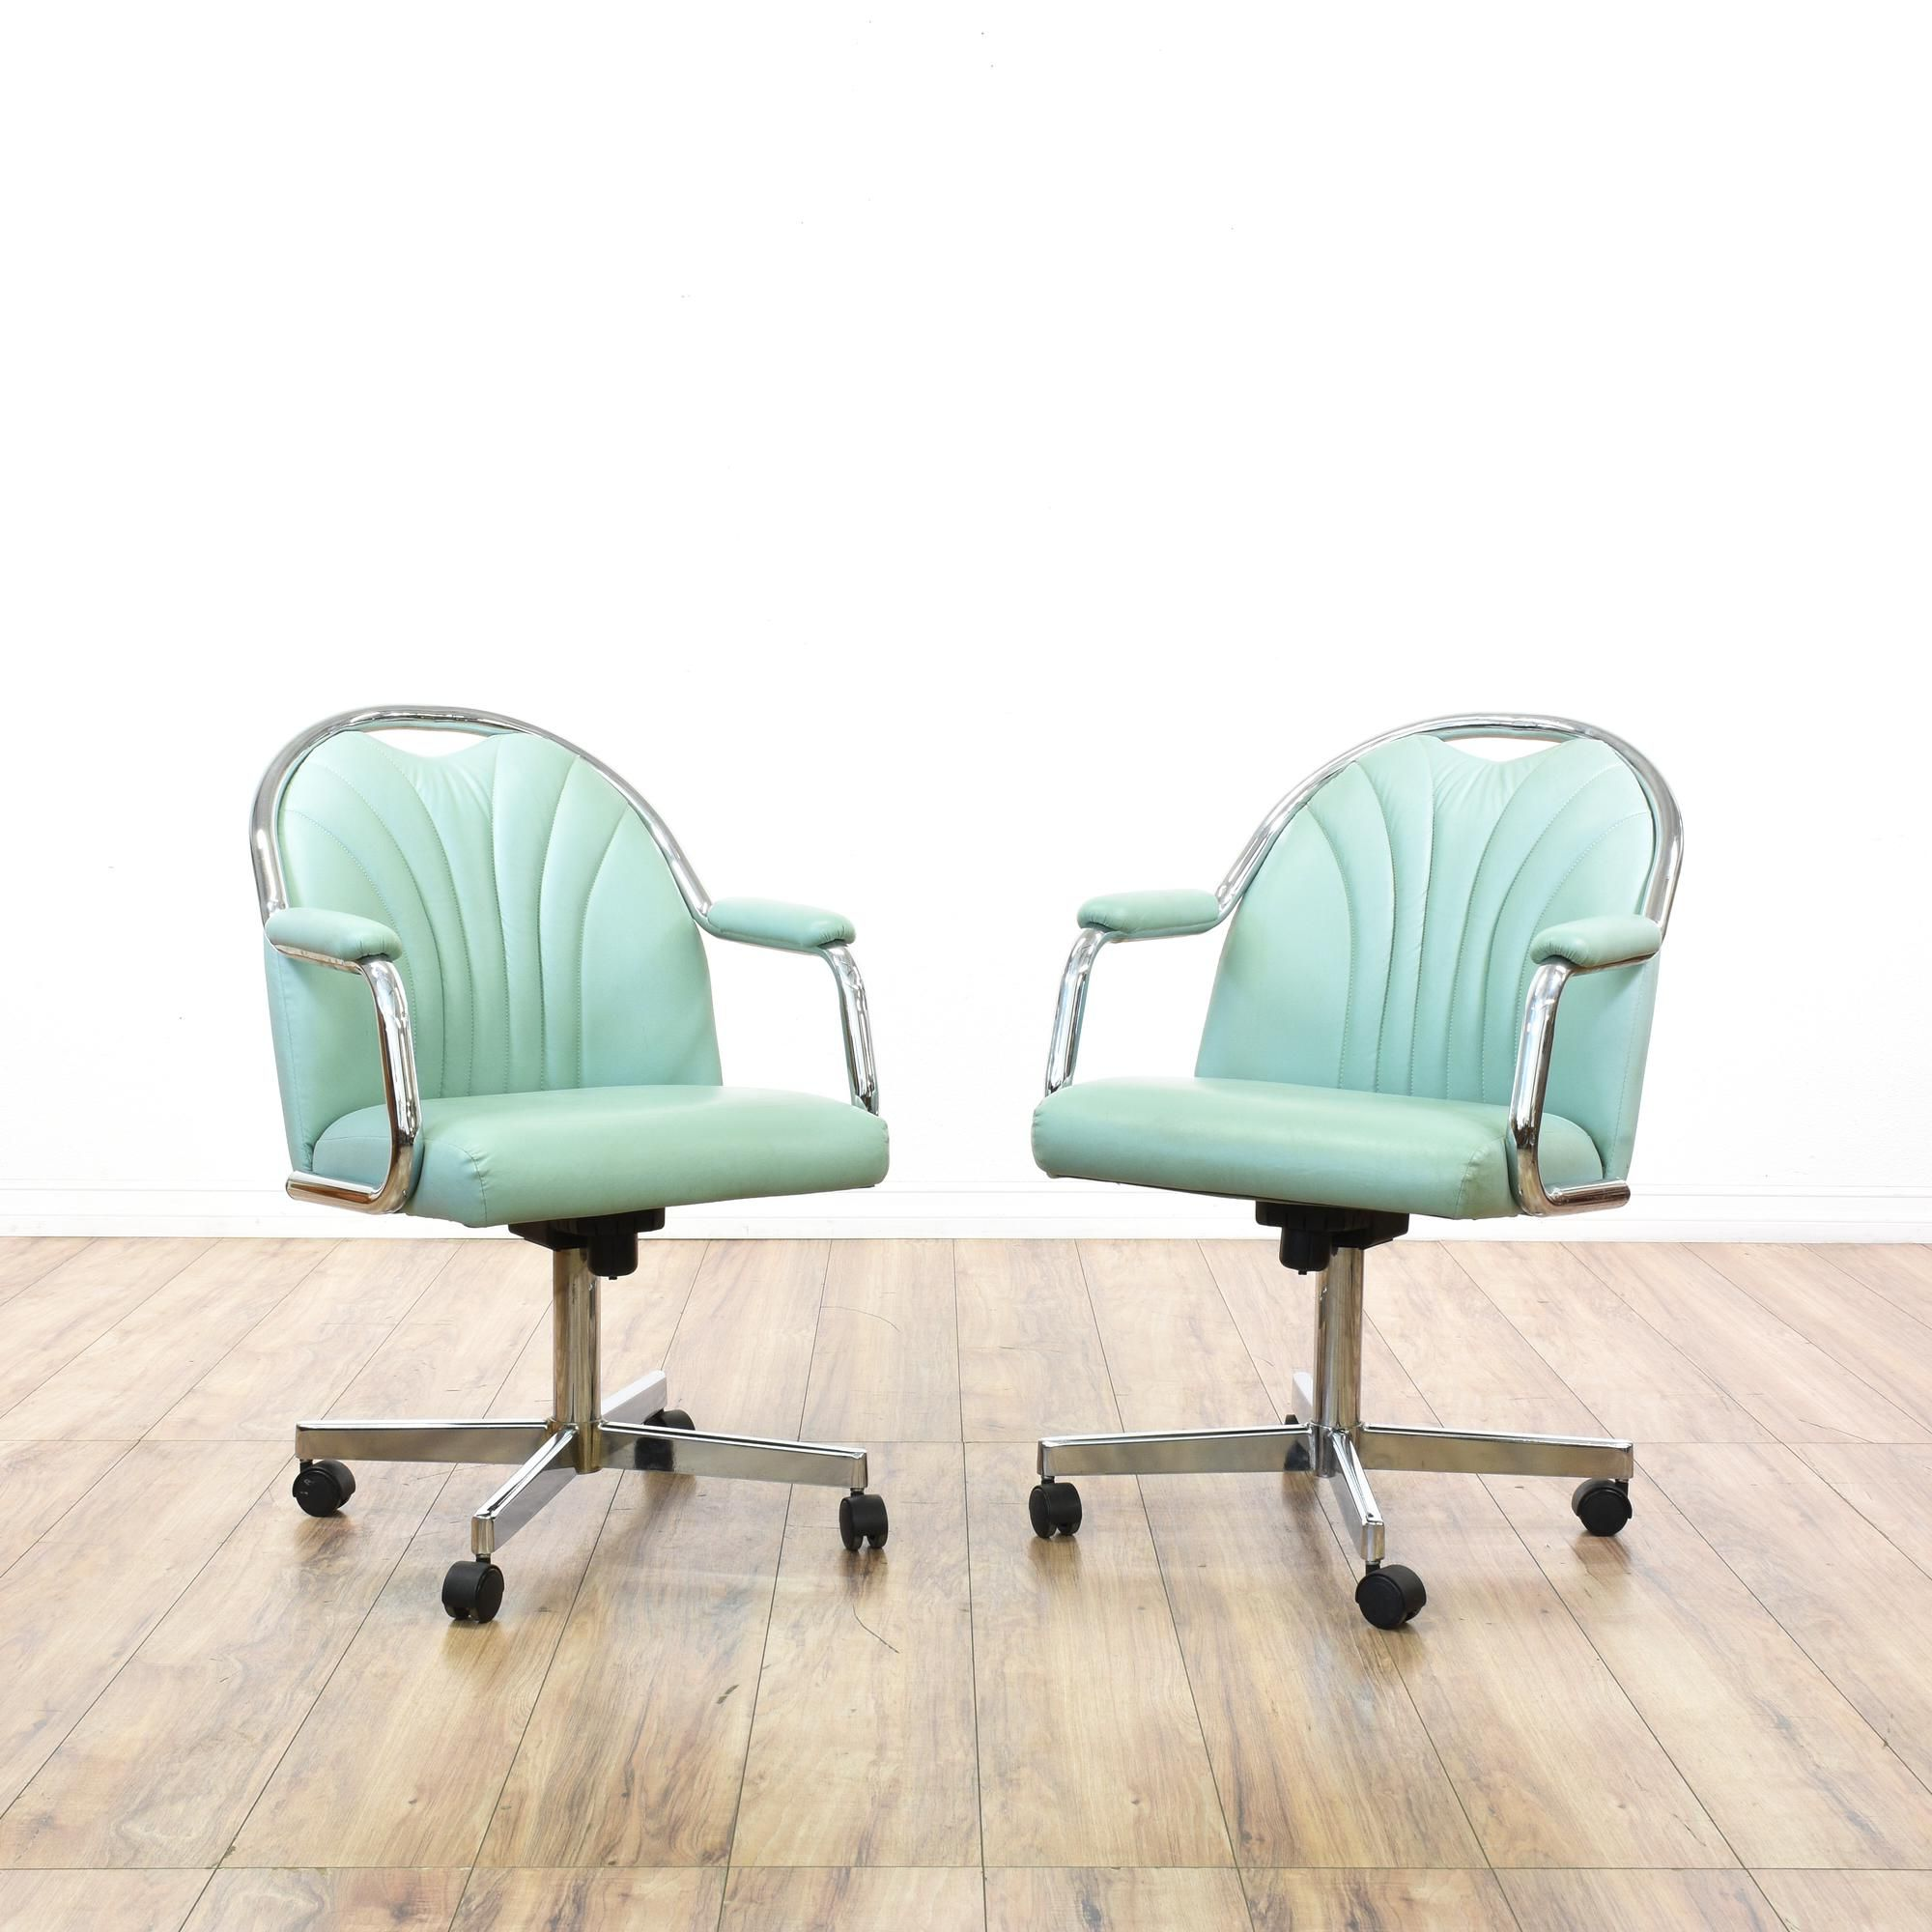 This pair of swivel chairs is featured in a shiny polished chrome